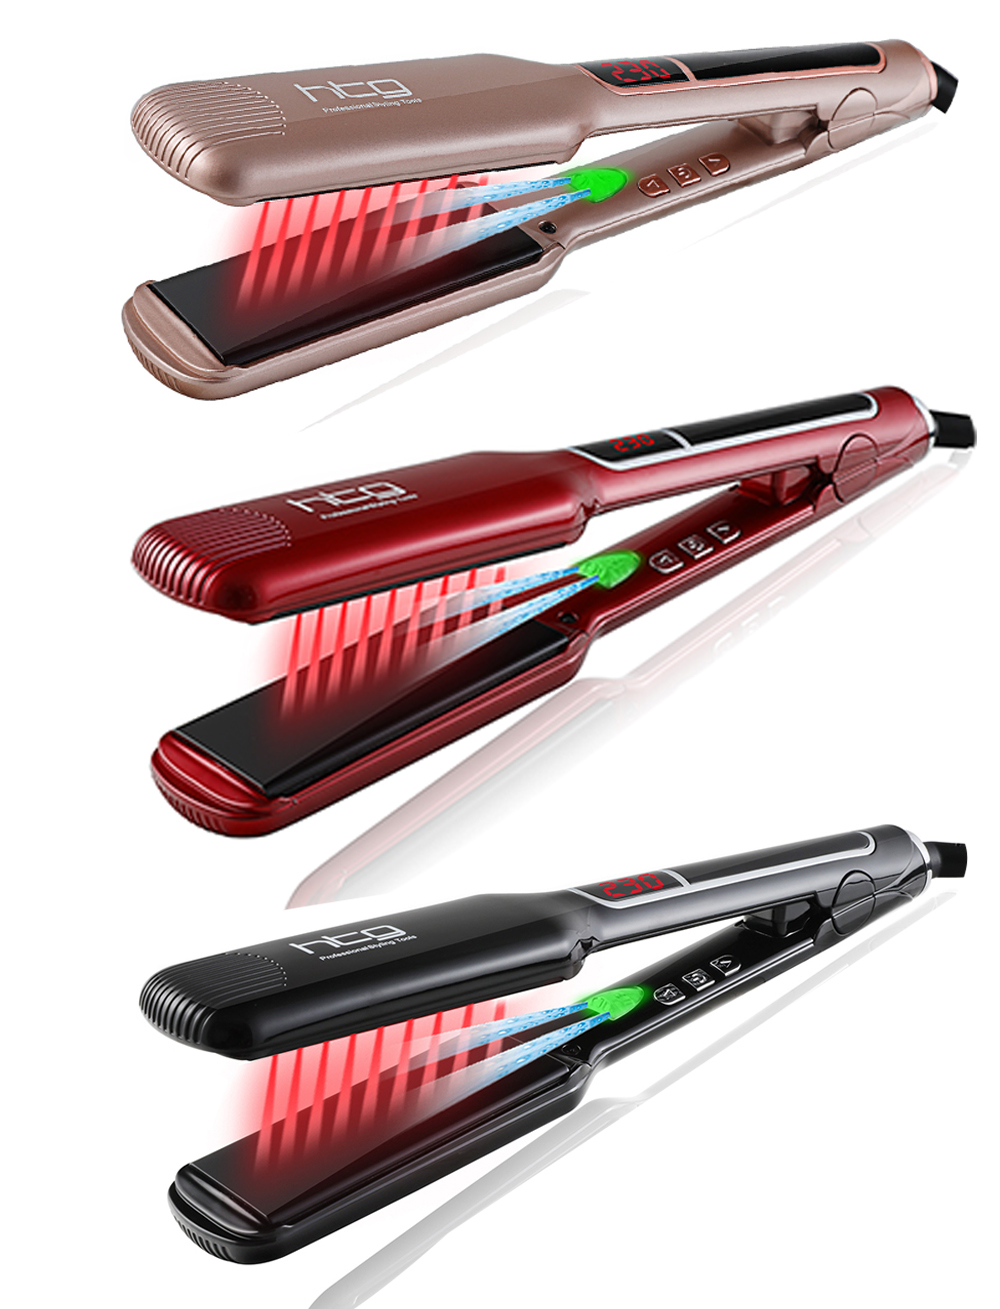 HTG Professional Hair Straightener Hair Flat Iron With Negative ION Infrared Hair Straightener Wide plates Hair Iron HT087L professional fast hair straightener nano titanium plates straightener hair iron hair flat iron u style beauty hair care tools